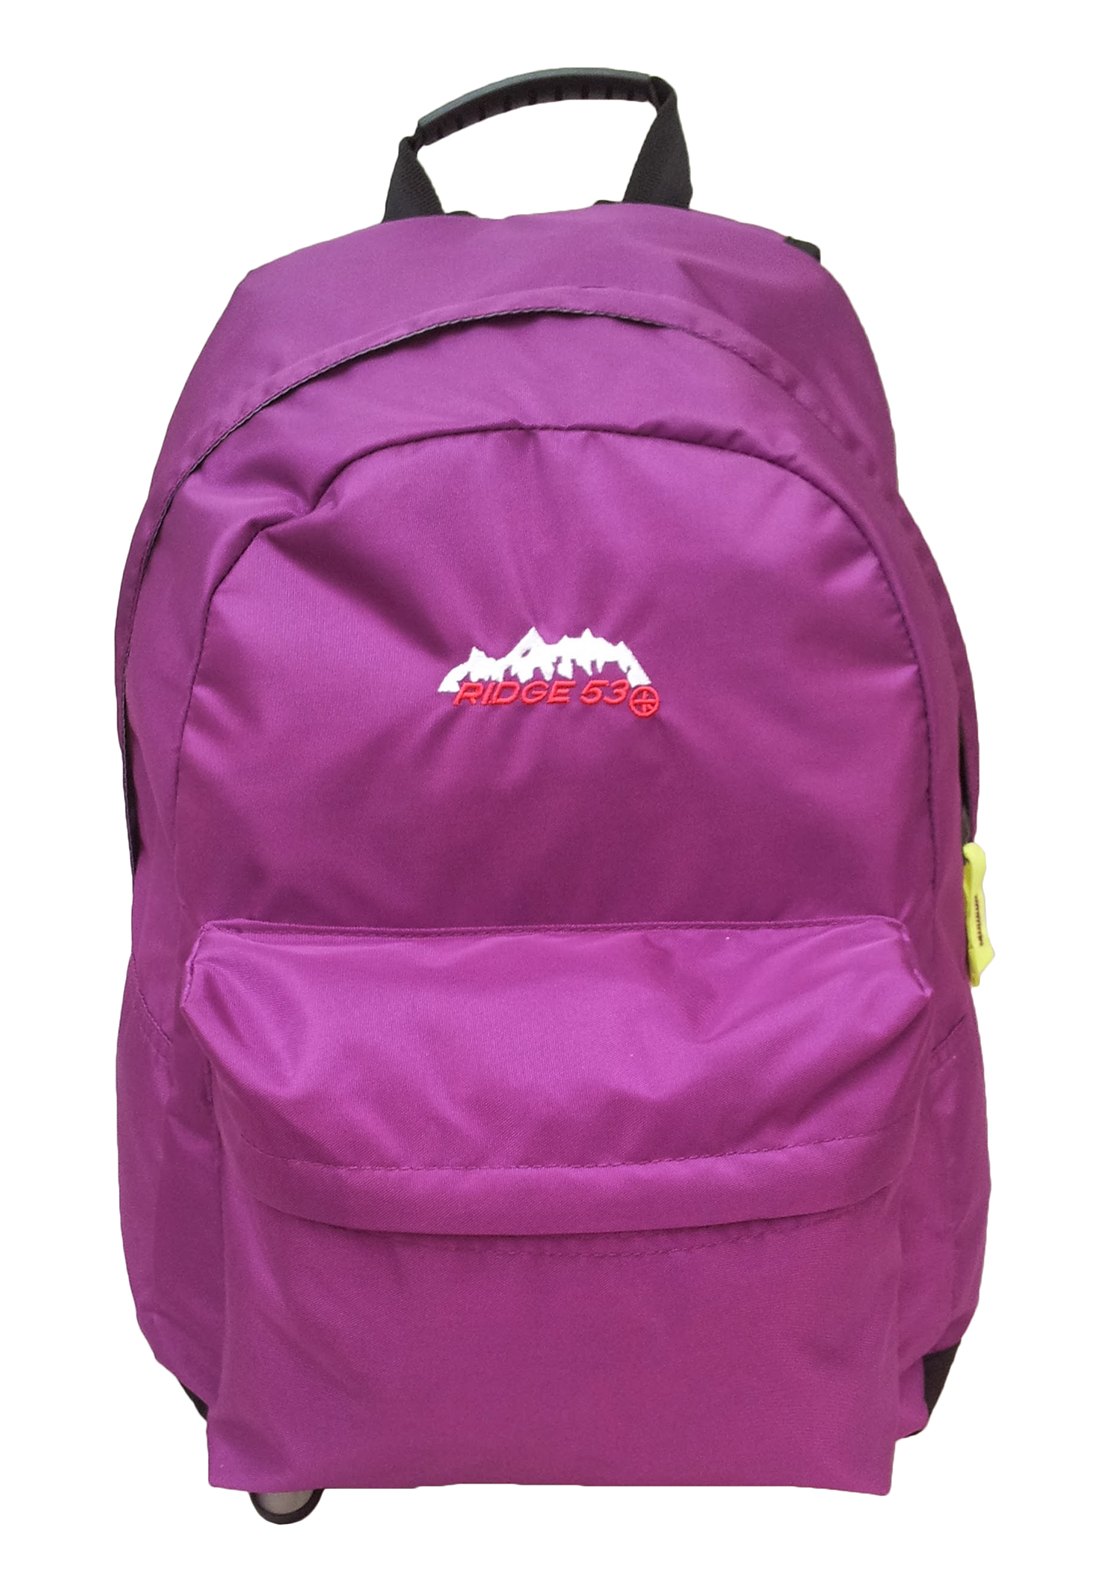 Ridge 53 Morgan Backpack School Bag, Purple